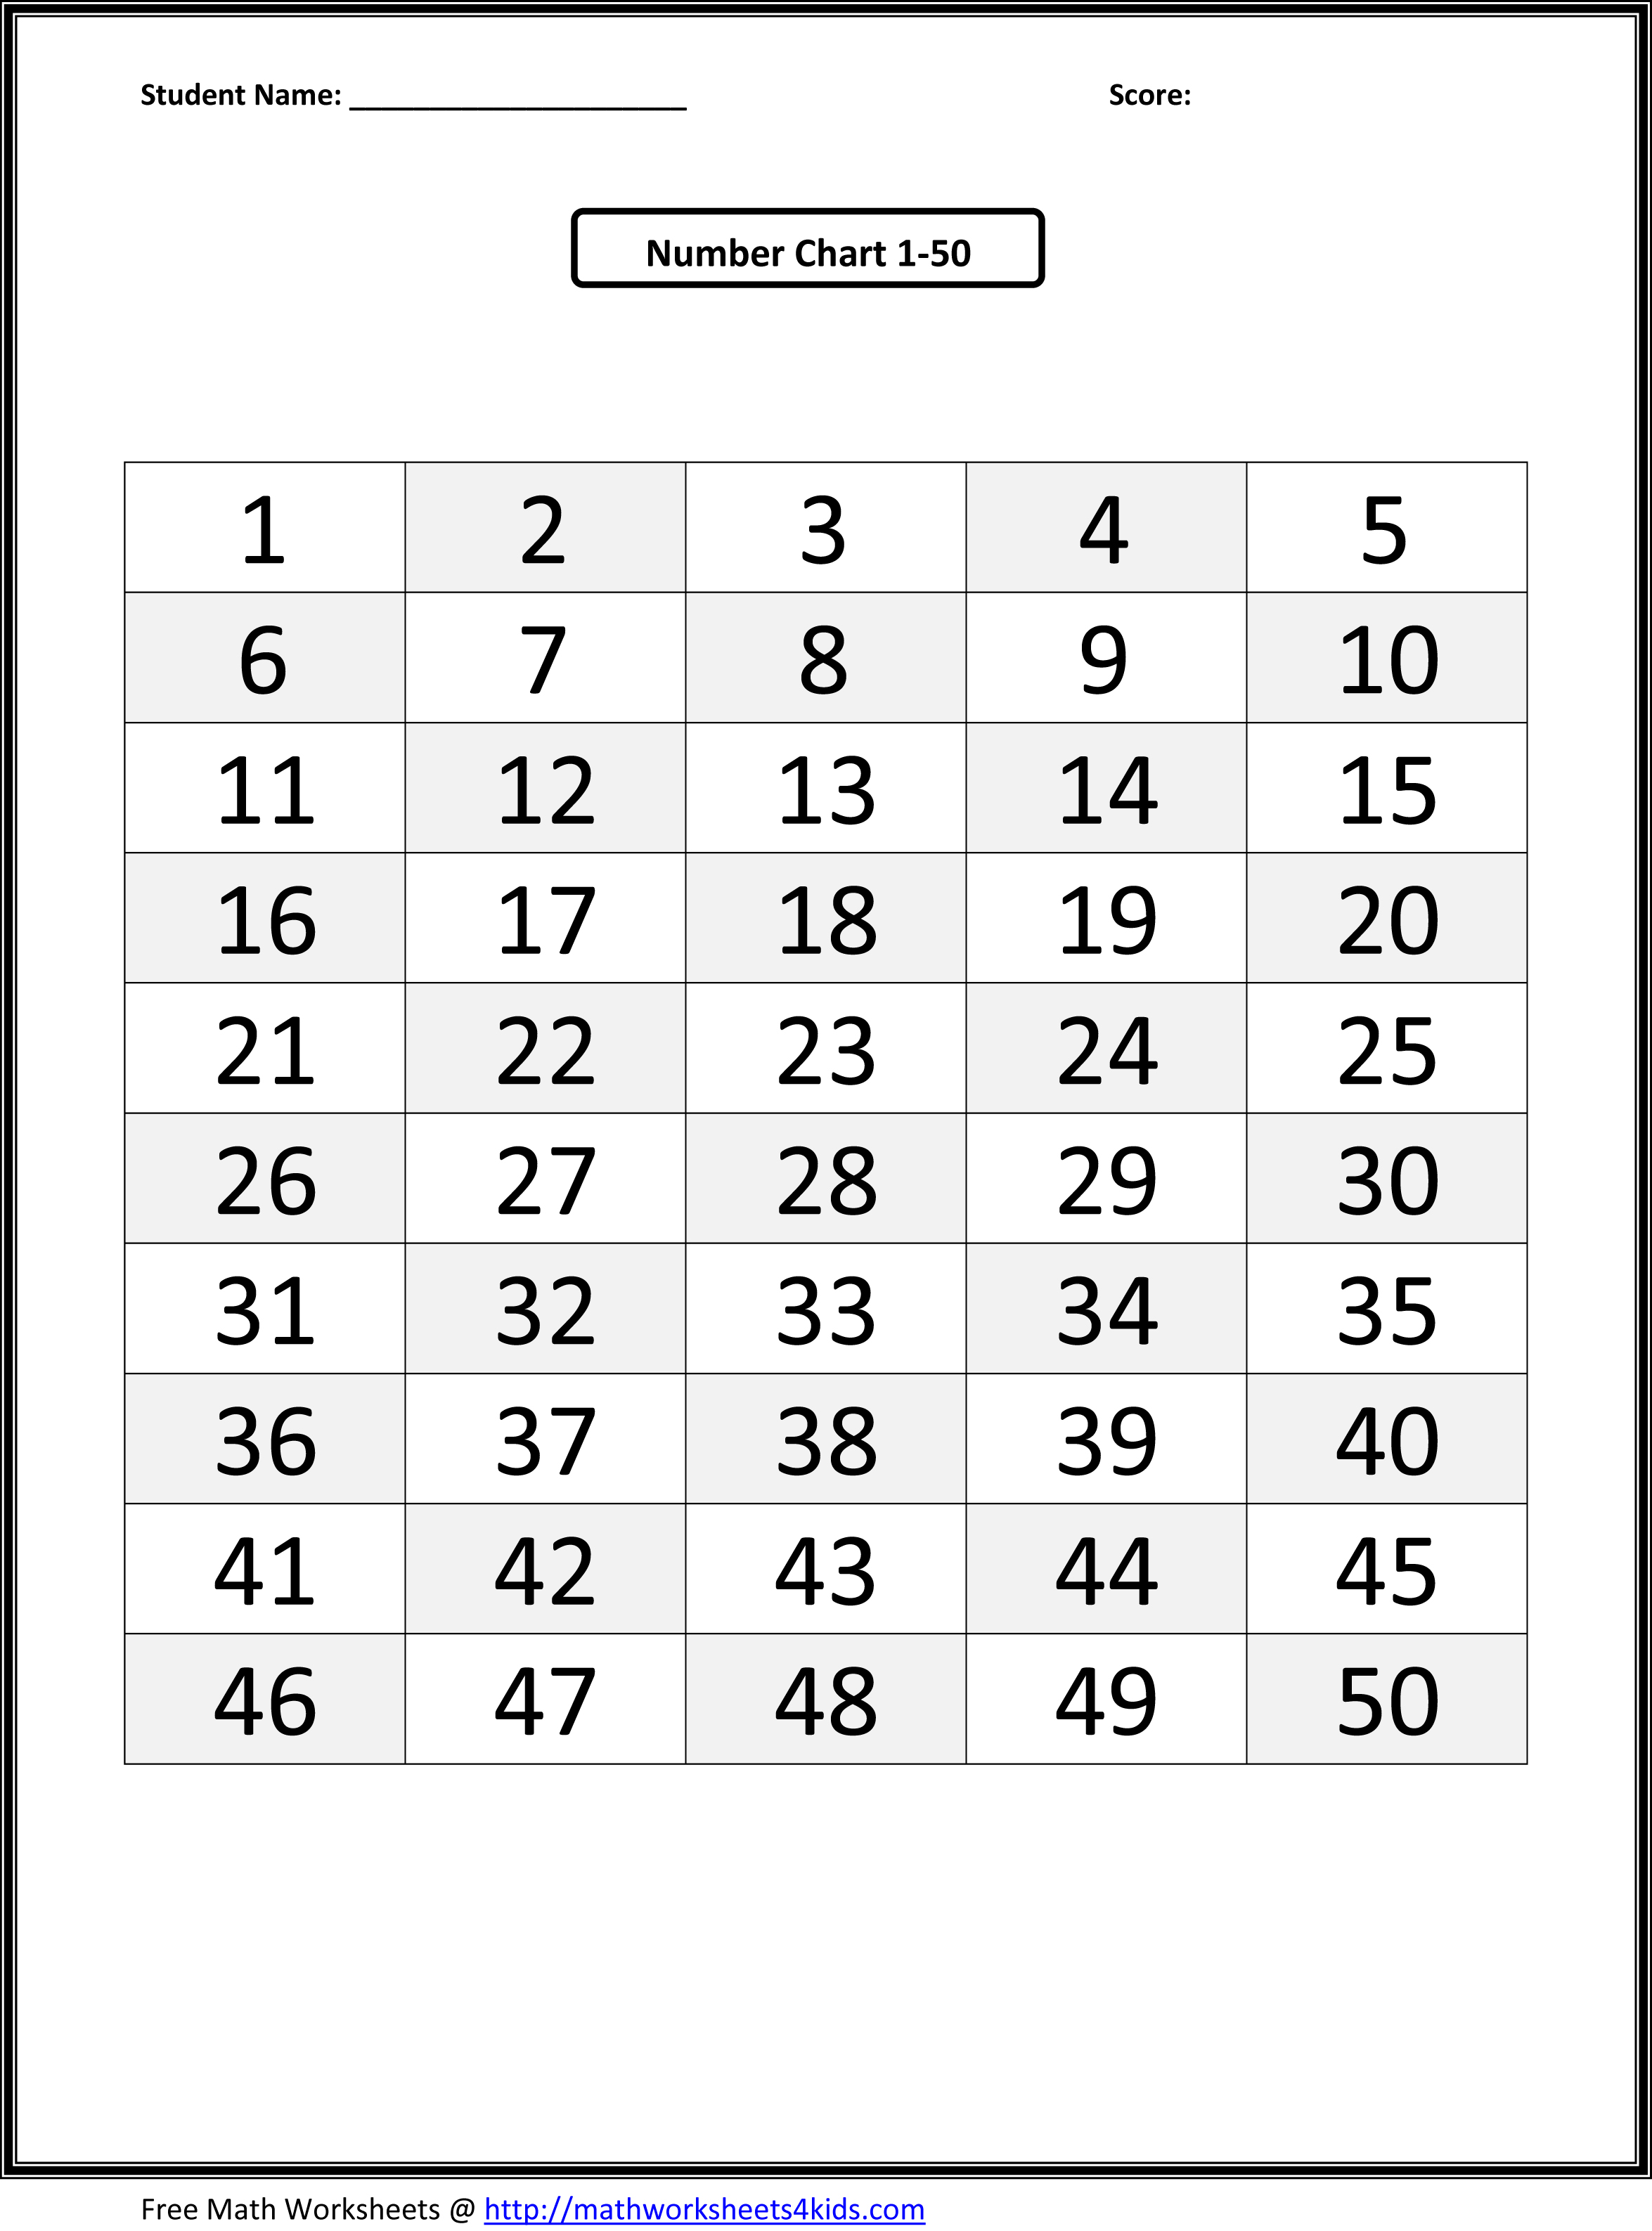 Number Printable Images Gallery Category Page 27